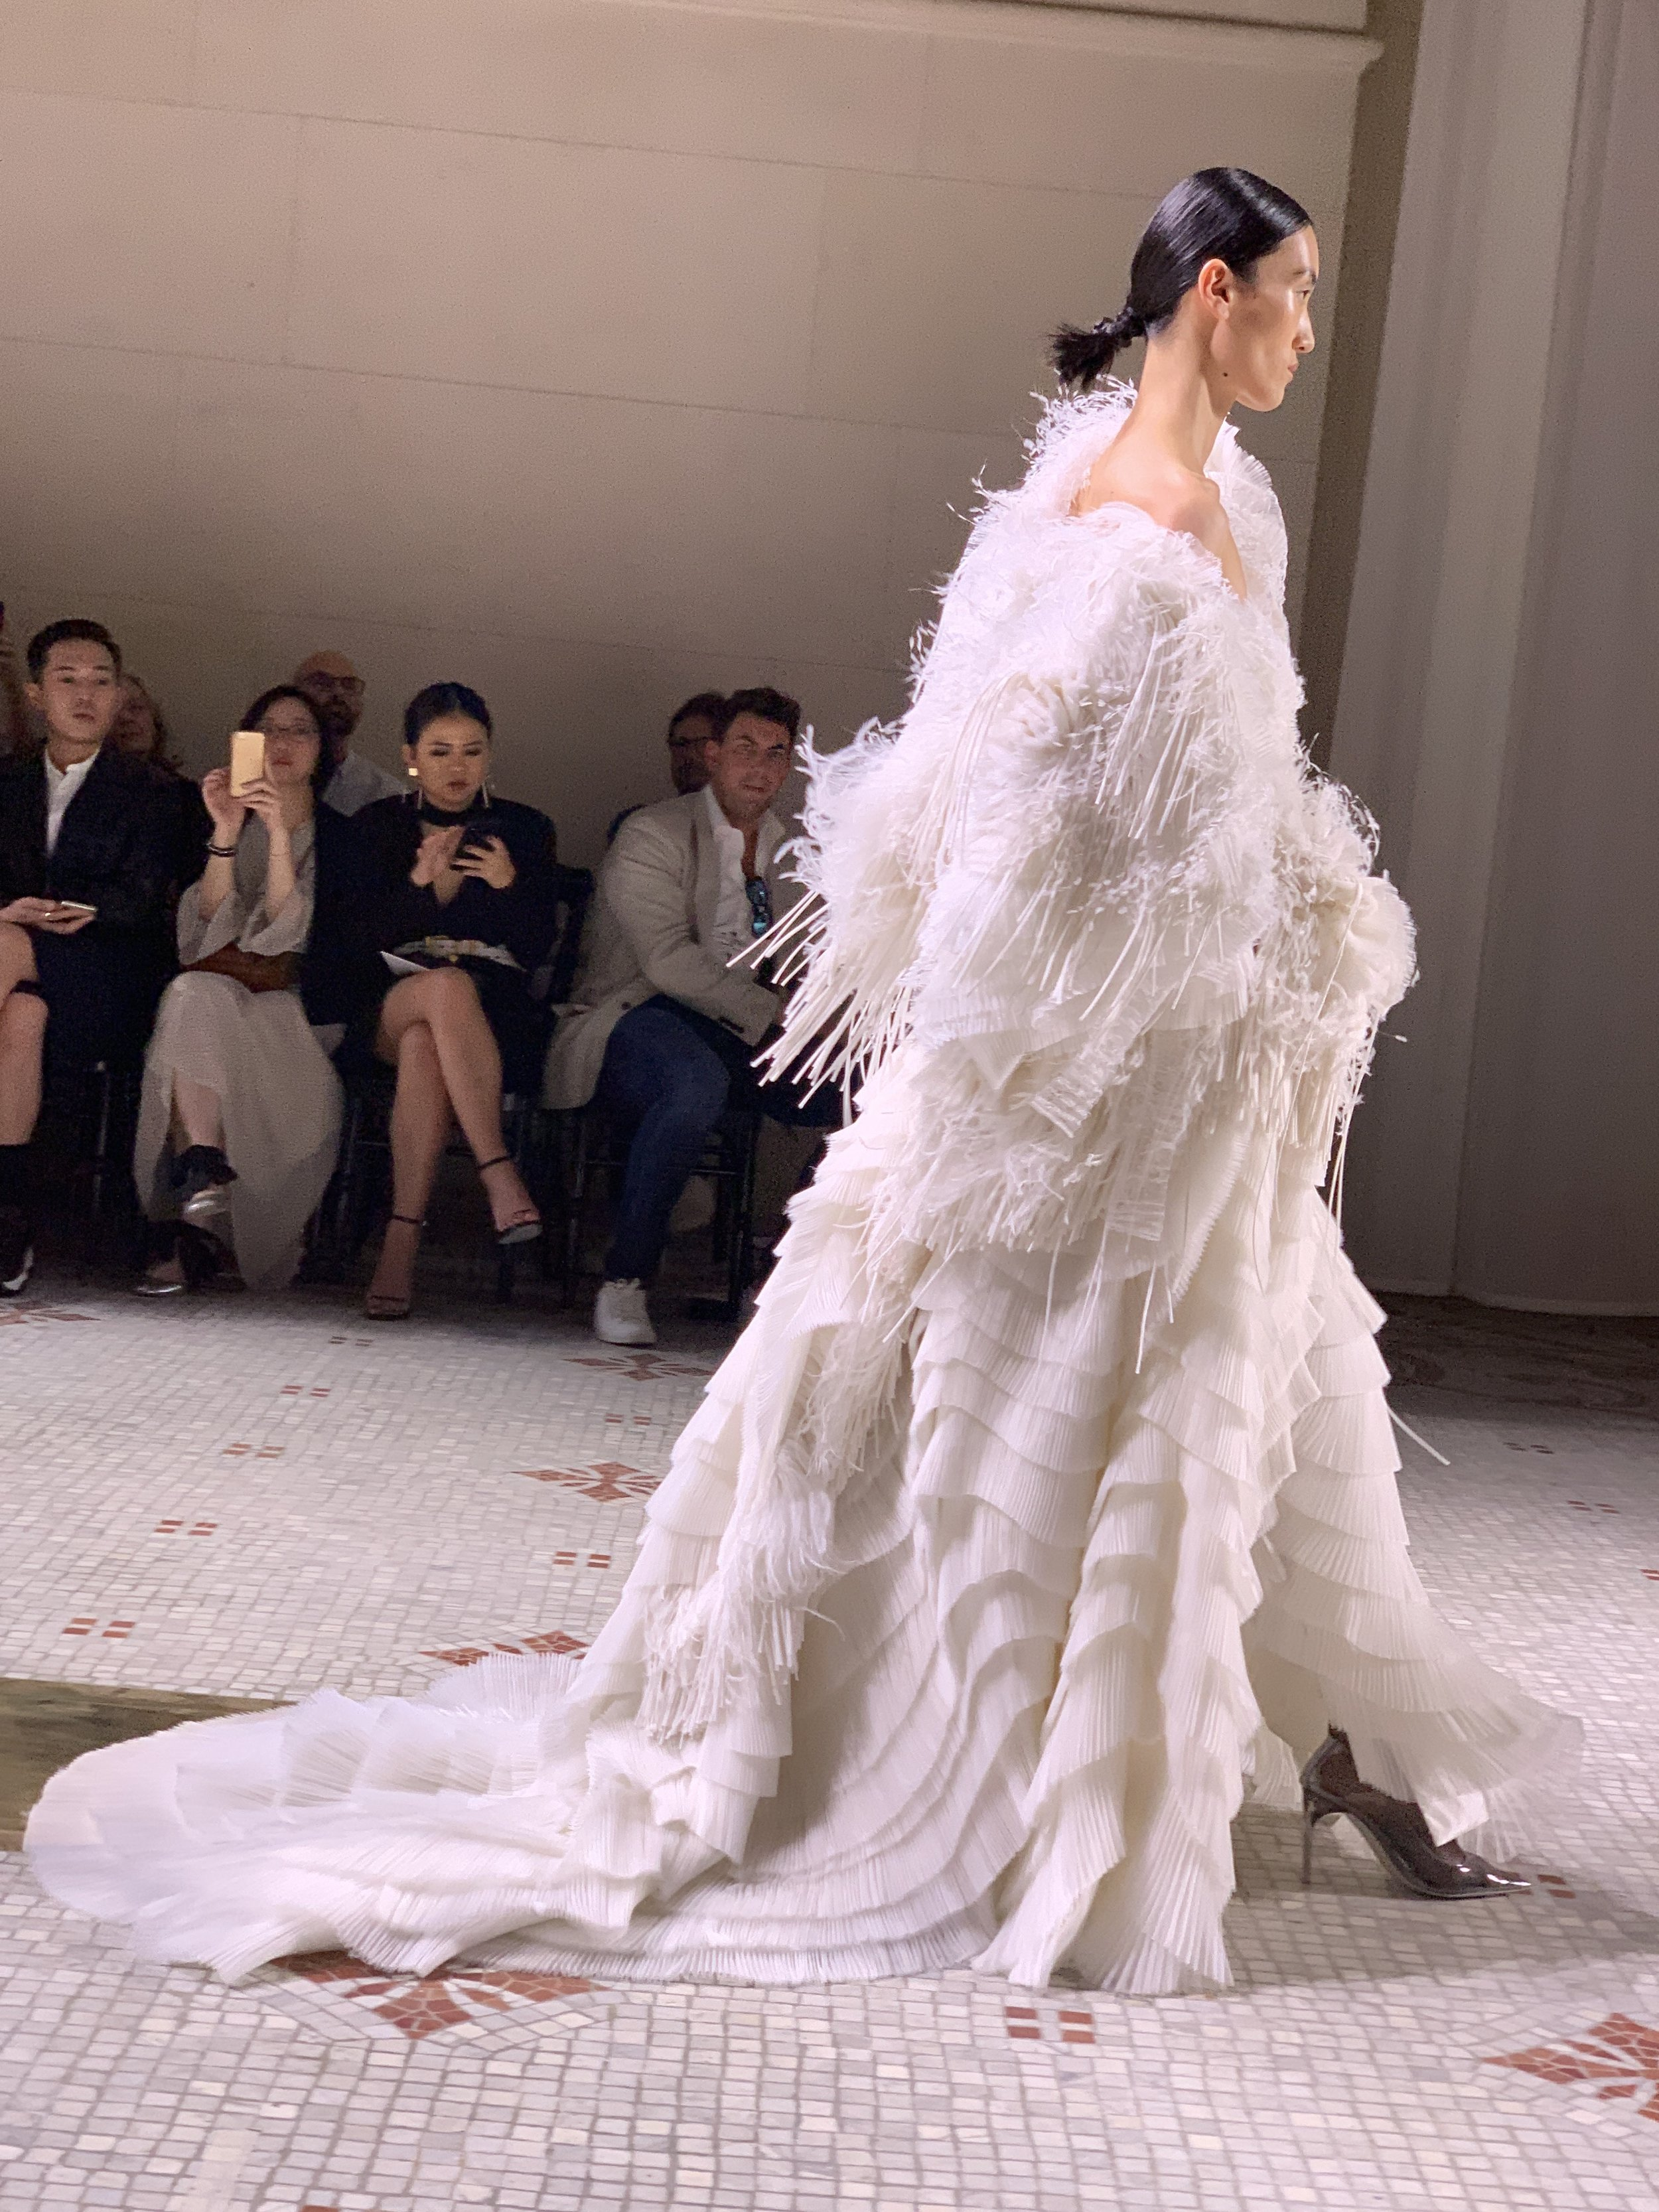 4/4 Givenchy Fall 19 Couture